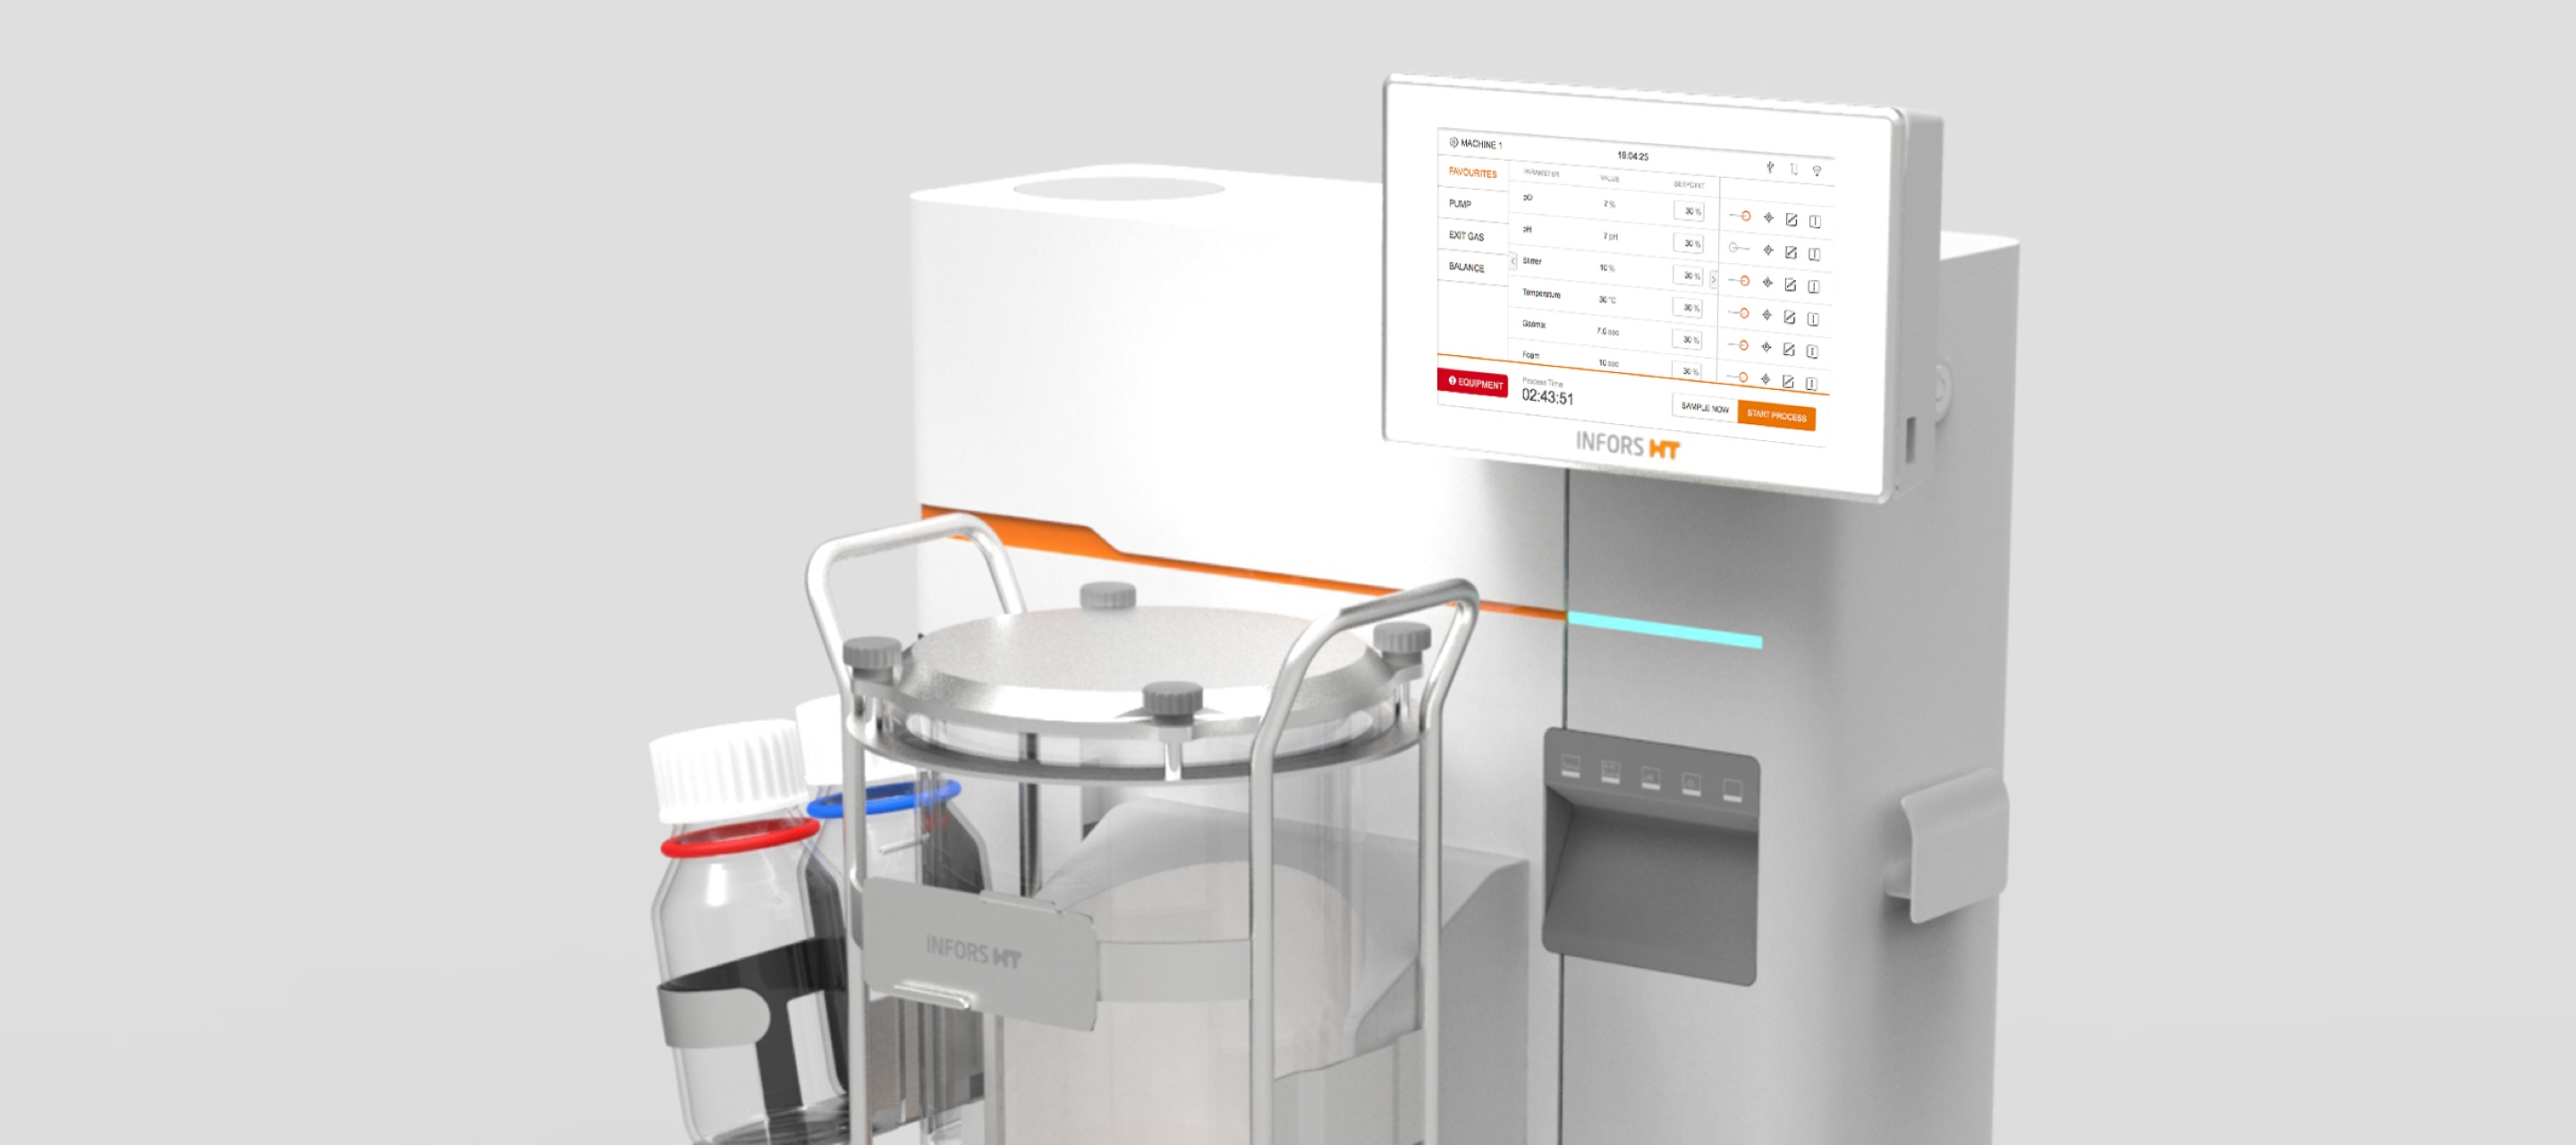 Rendering of the minifors tabletop bioreactor with the new user interface